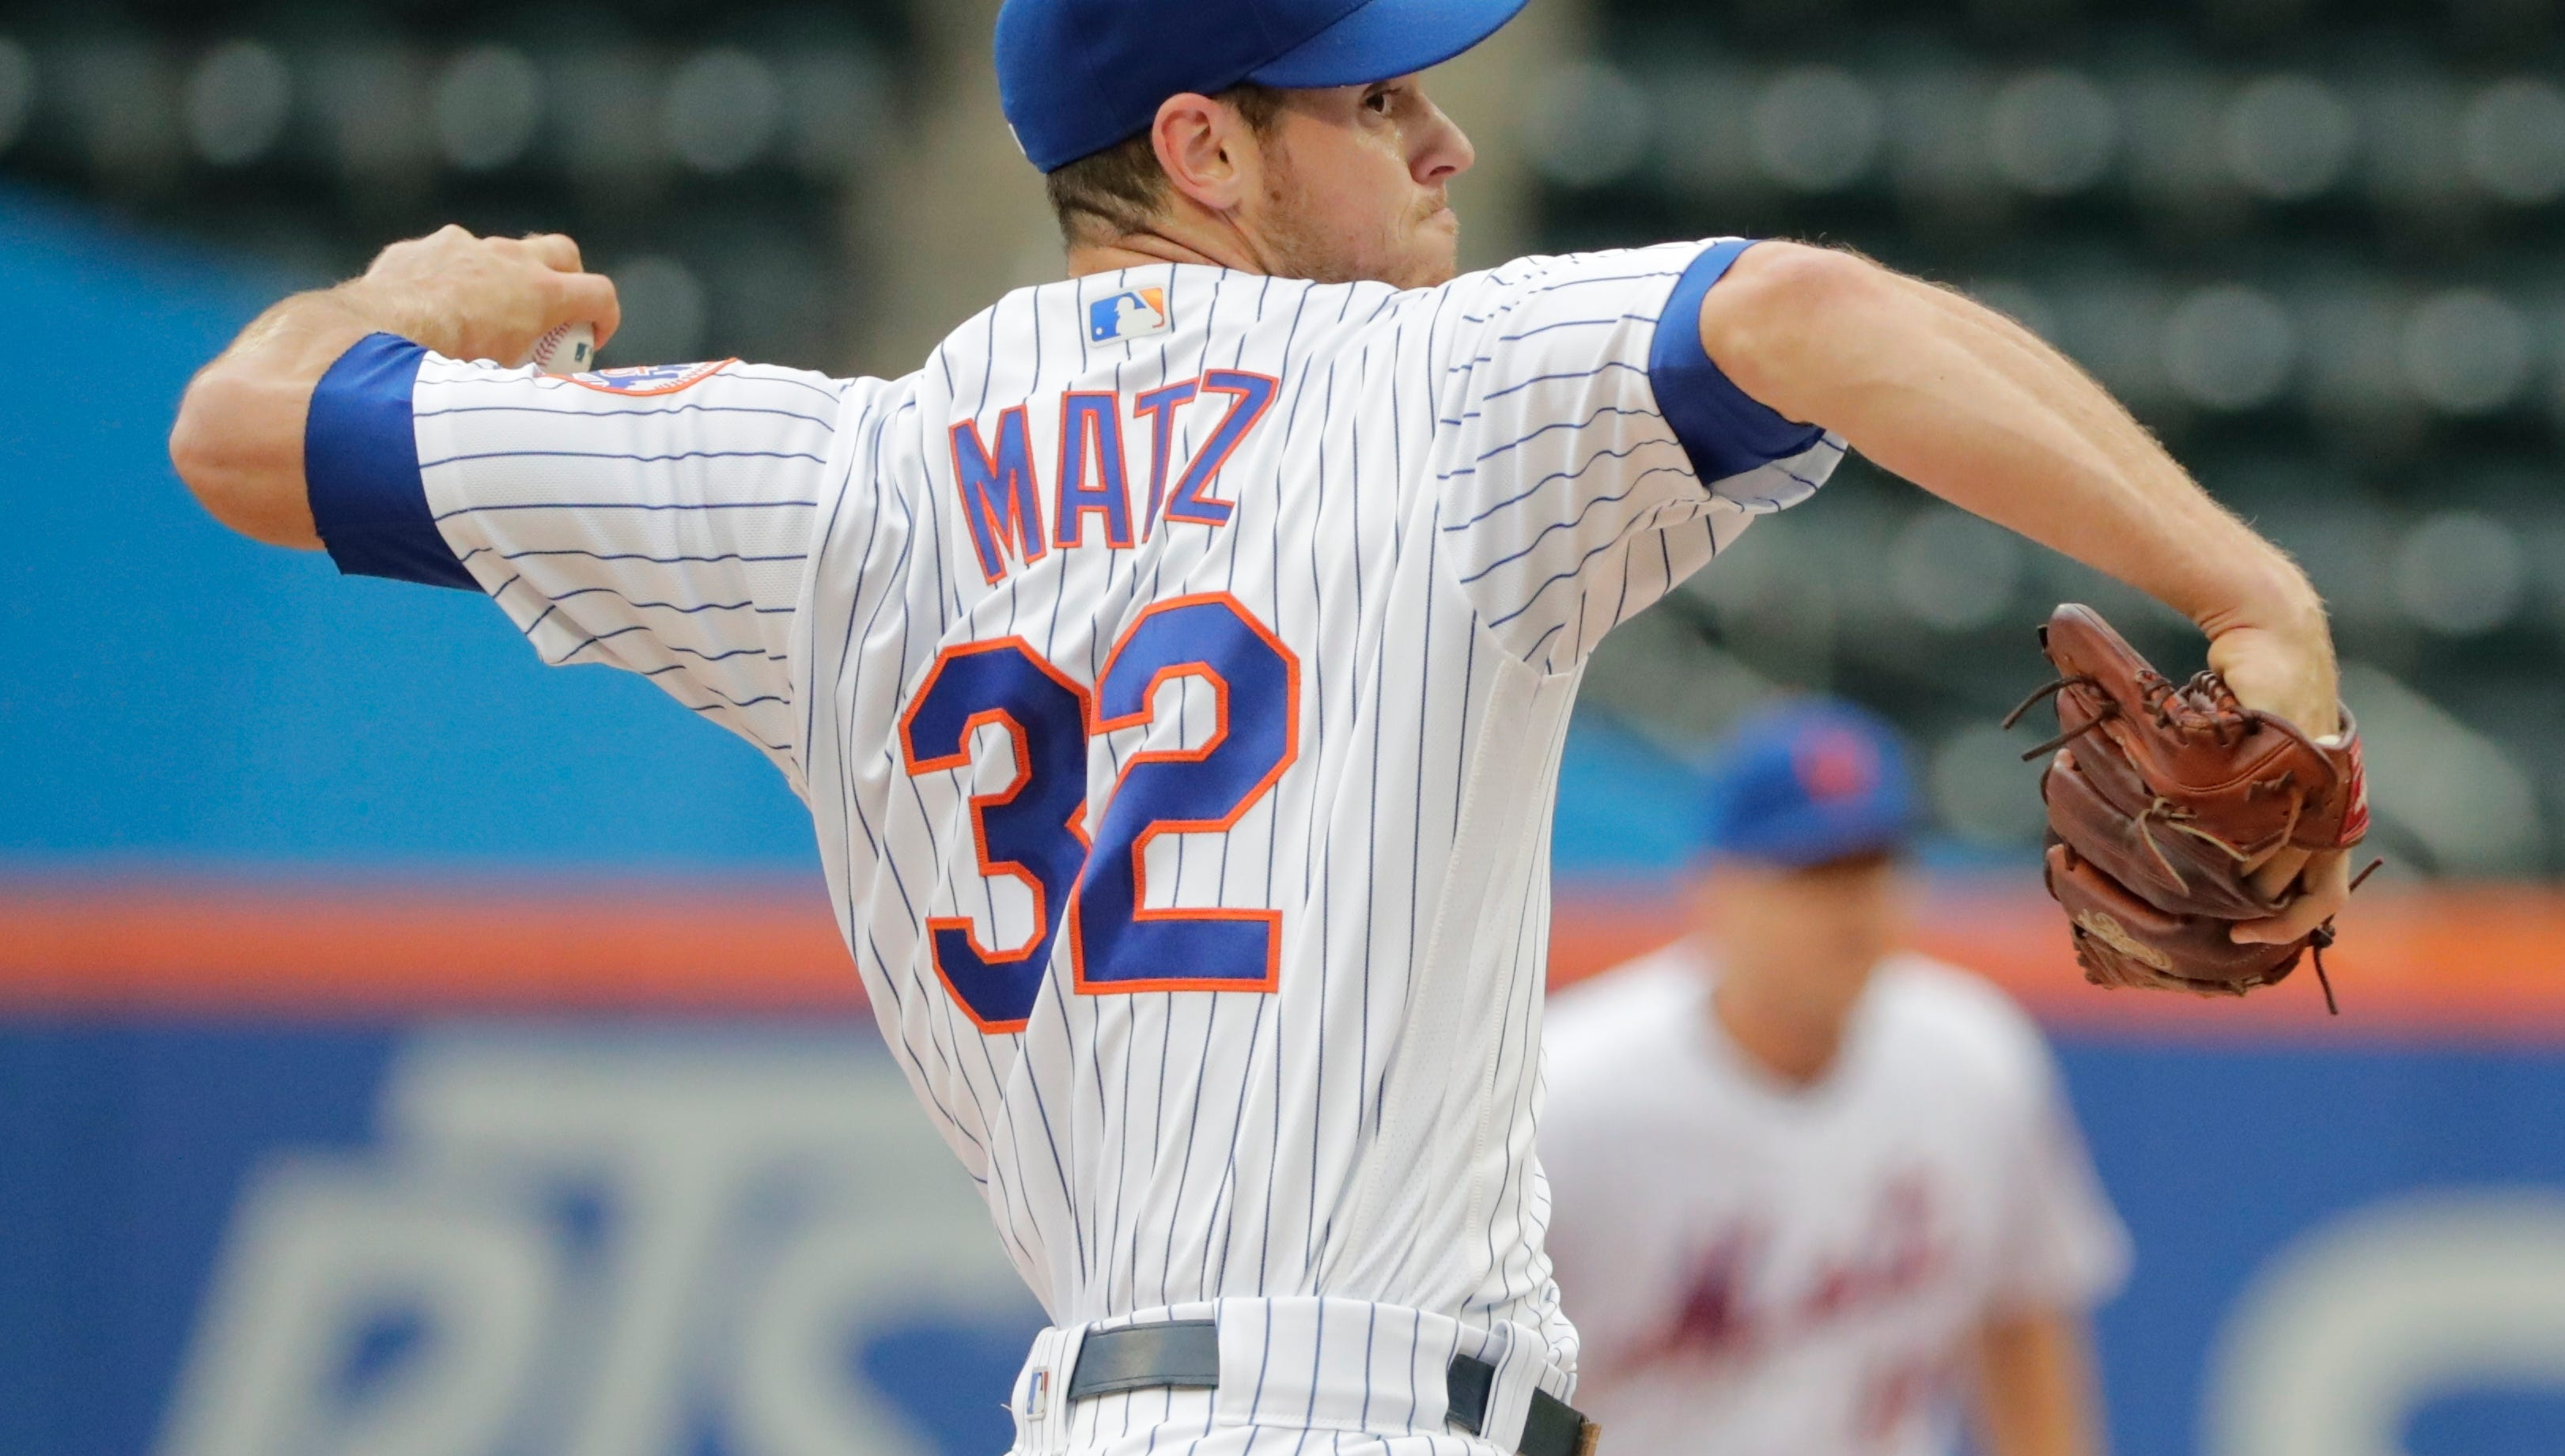 Steven Matz gets the start on Tuesday night as the Mets announced their lineup looking to continue their dominance of the Phillies this season.